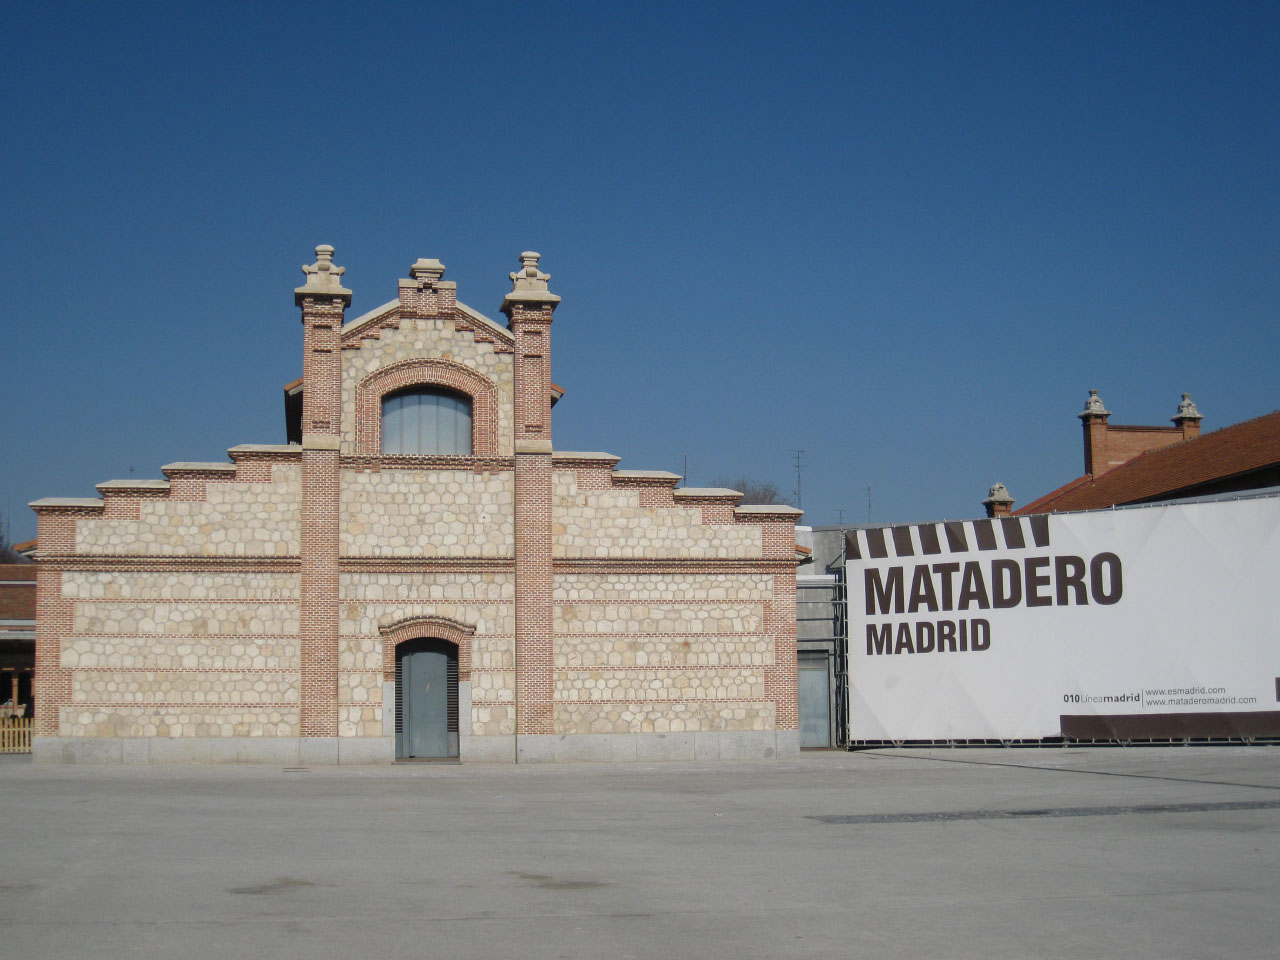 Exterior of the renovated Matadero cultural center in Madrid, Spain